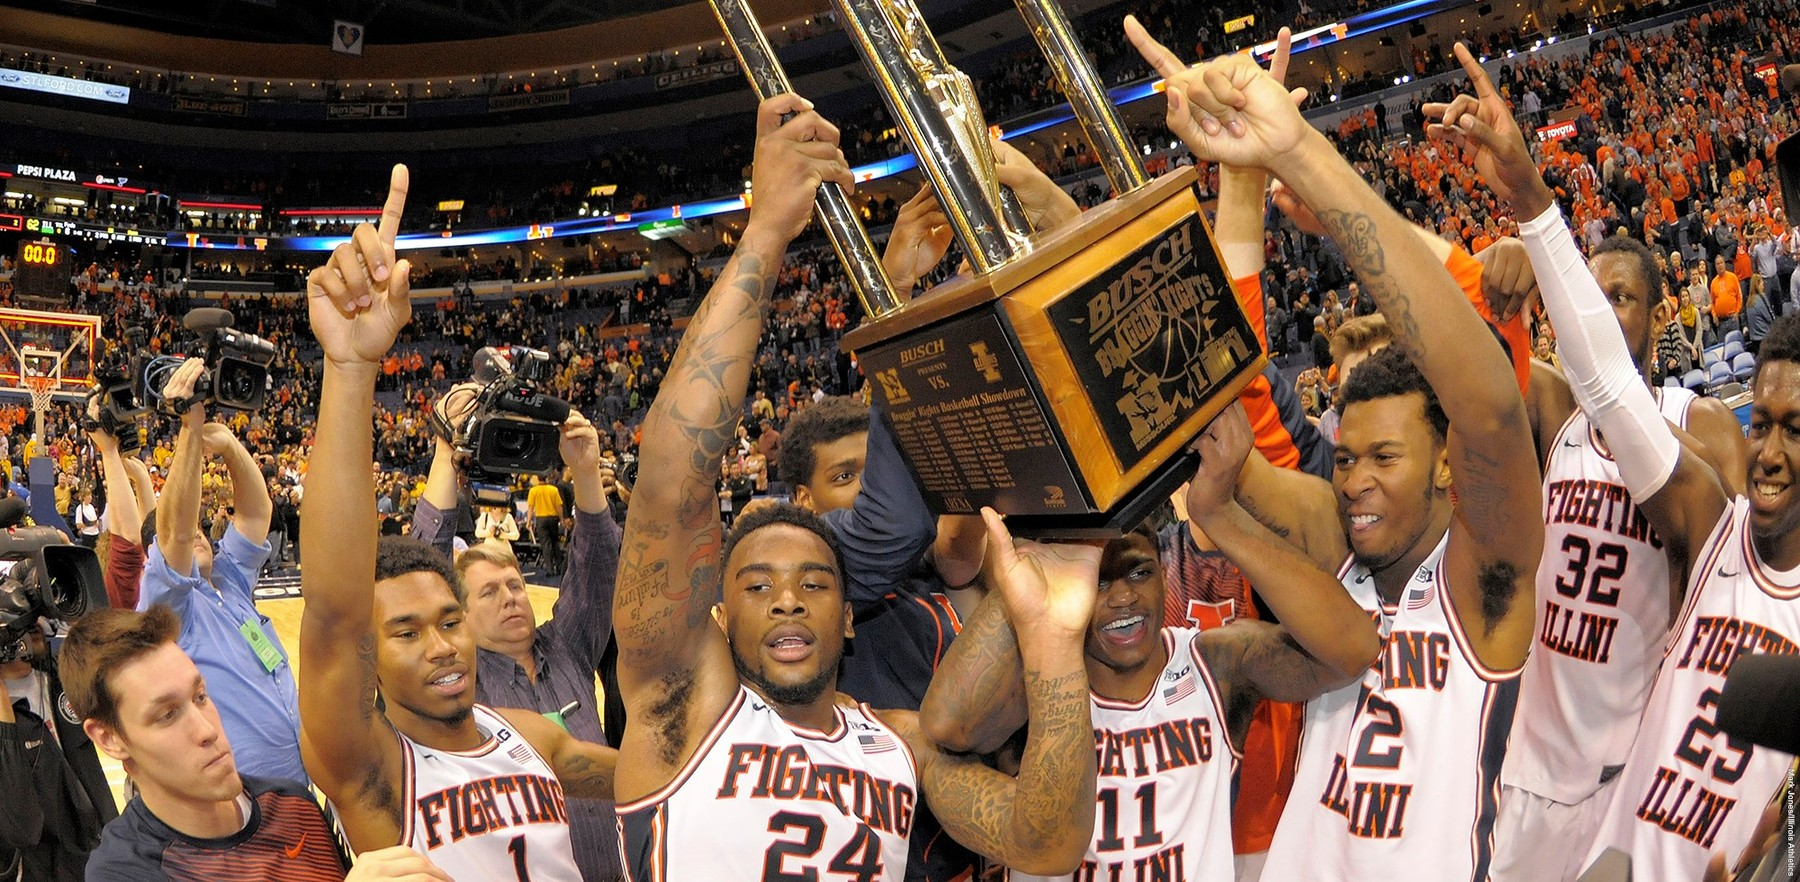 Image of Fighting Illini basketball players celebrating